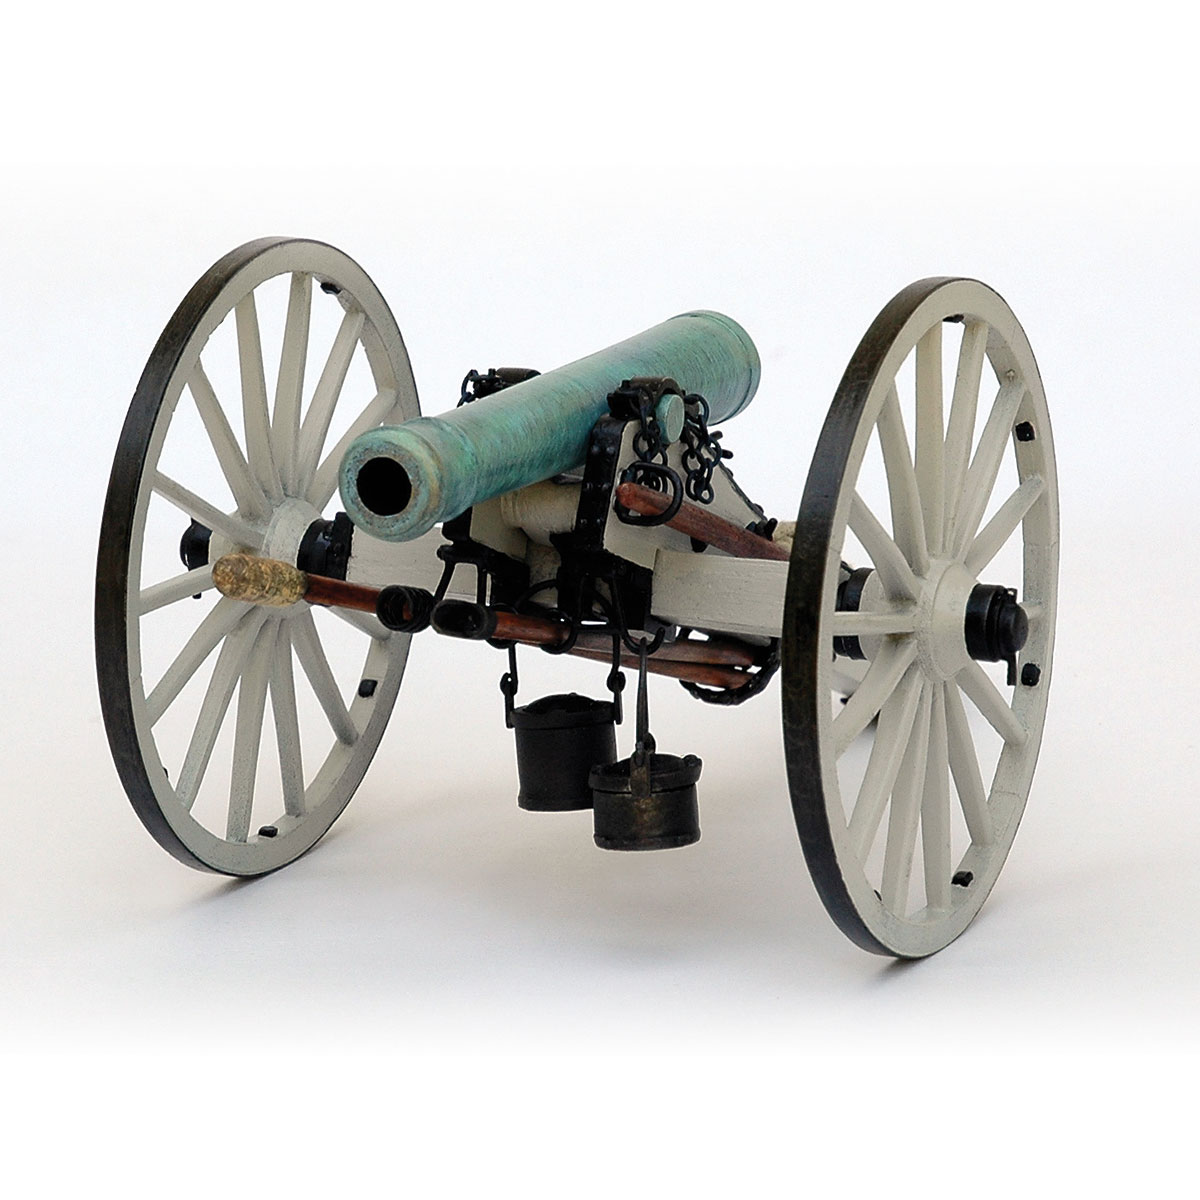 guns of history james cannon 6 lbr 1 16 scale